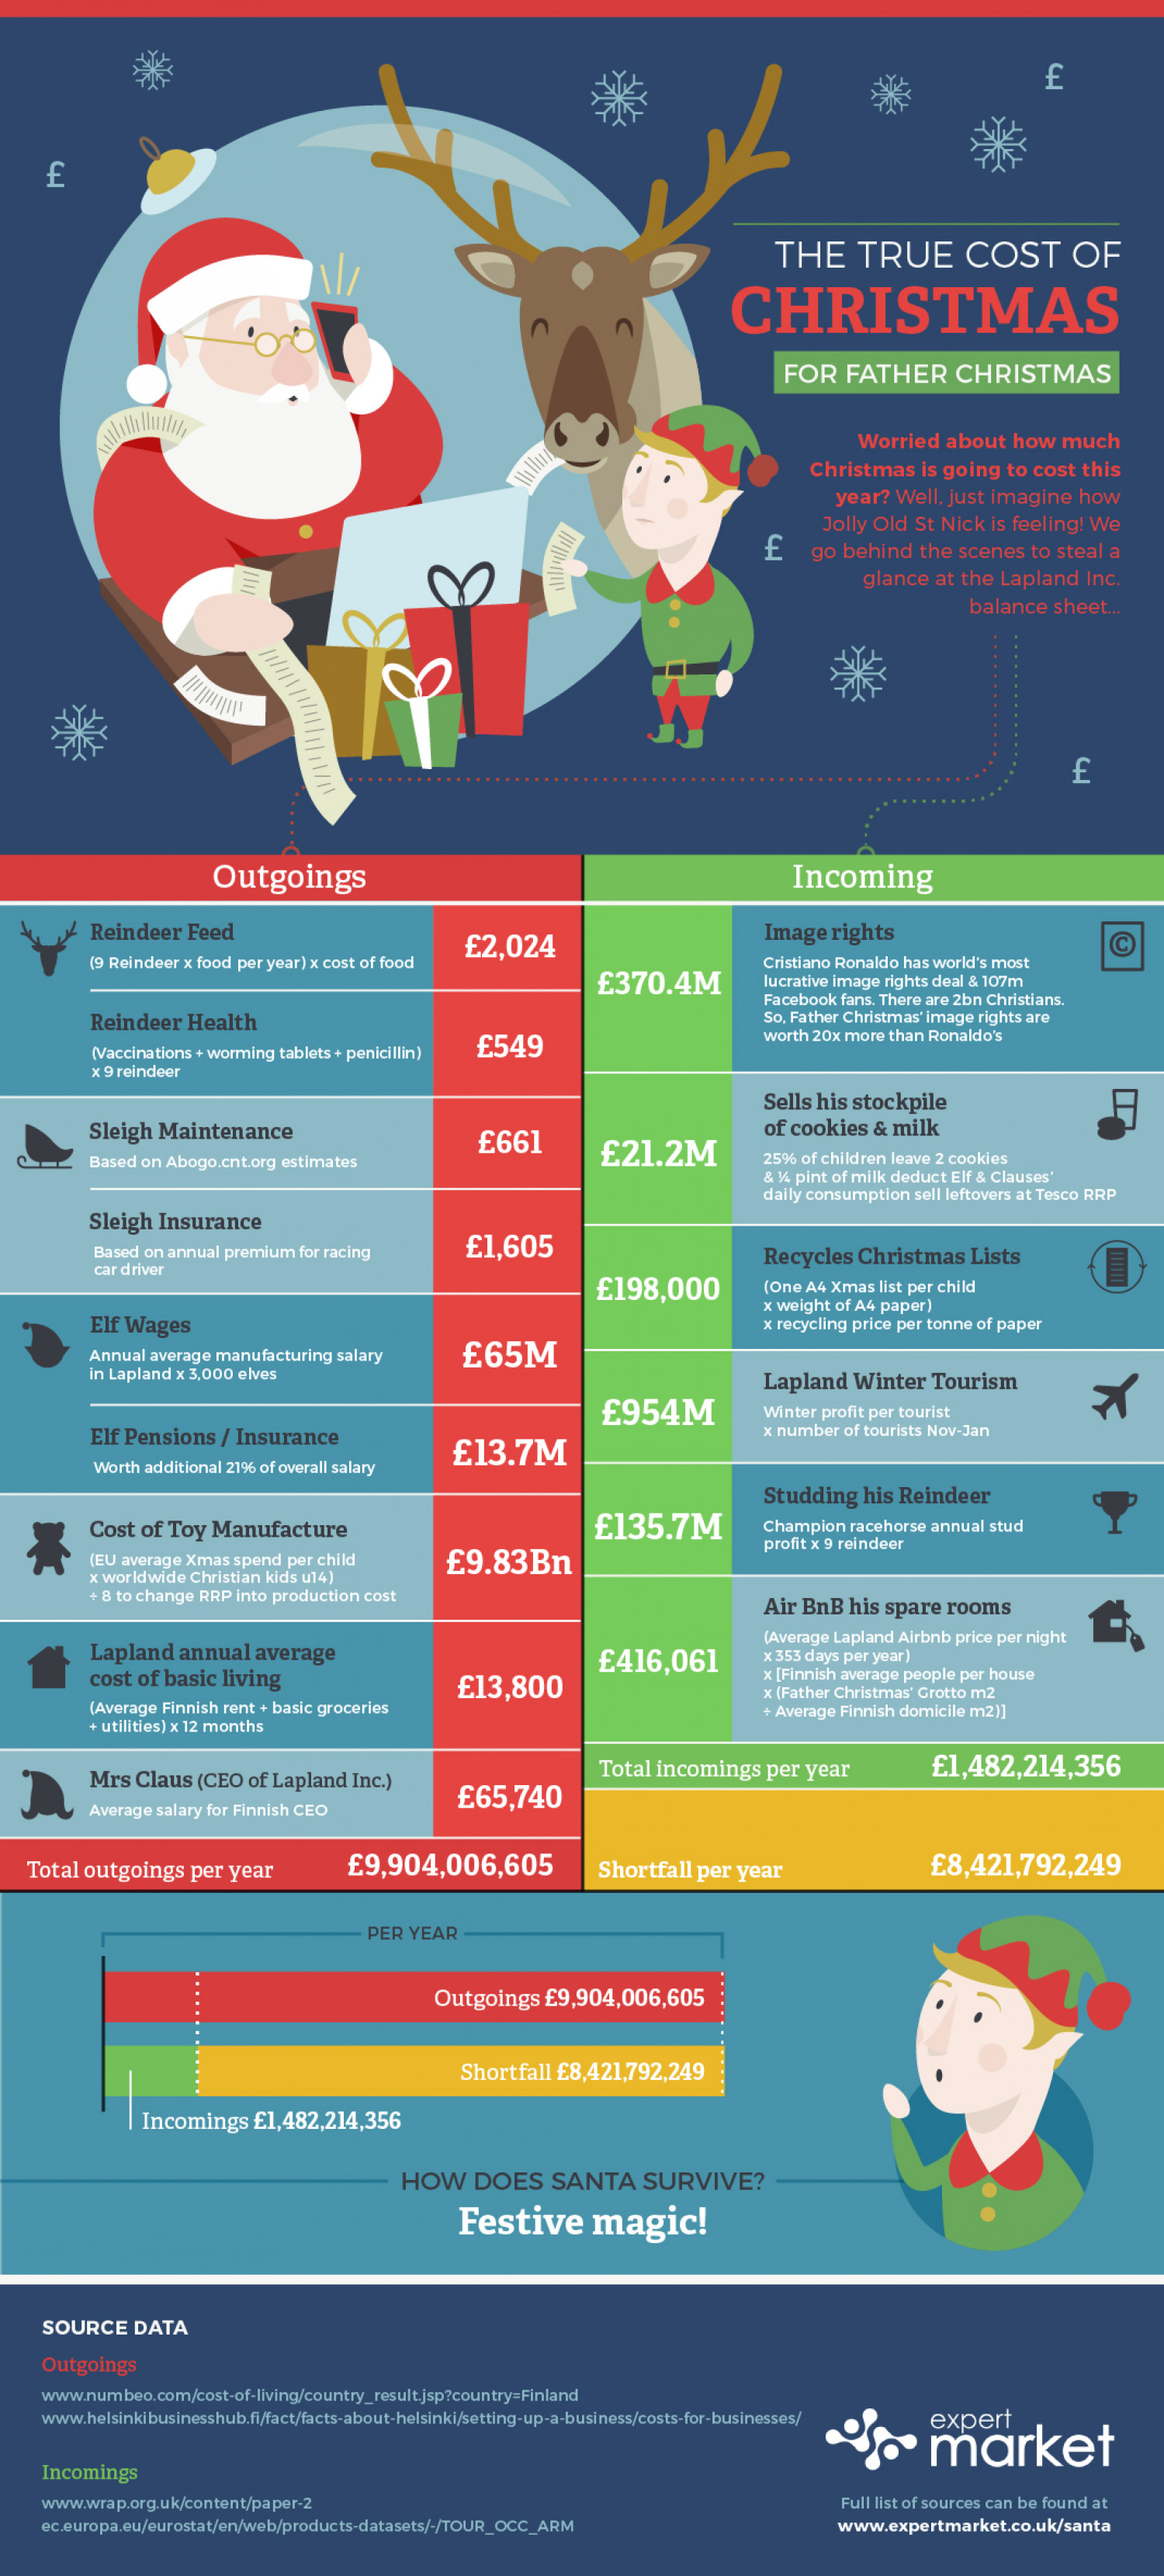 The True Cost of Christmas (For Father Christmas) Infographic